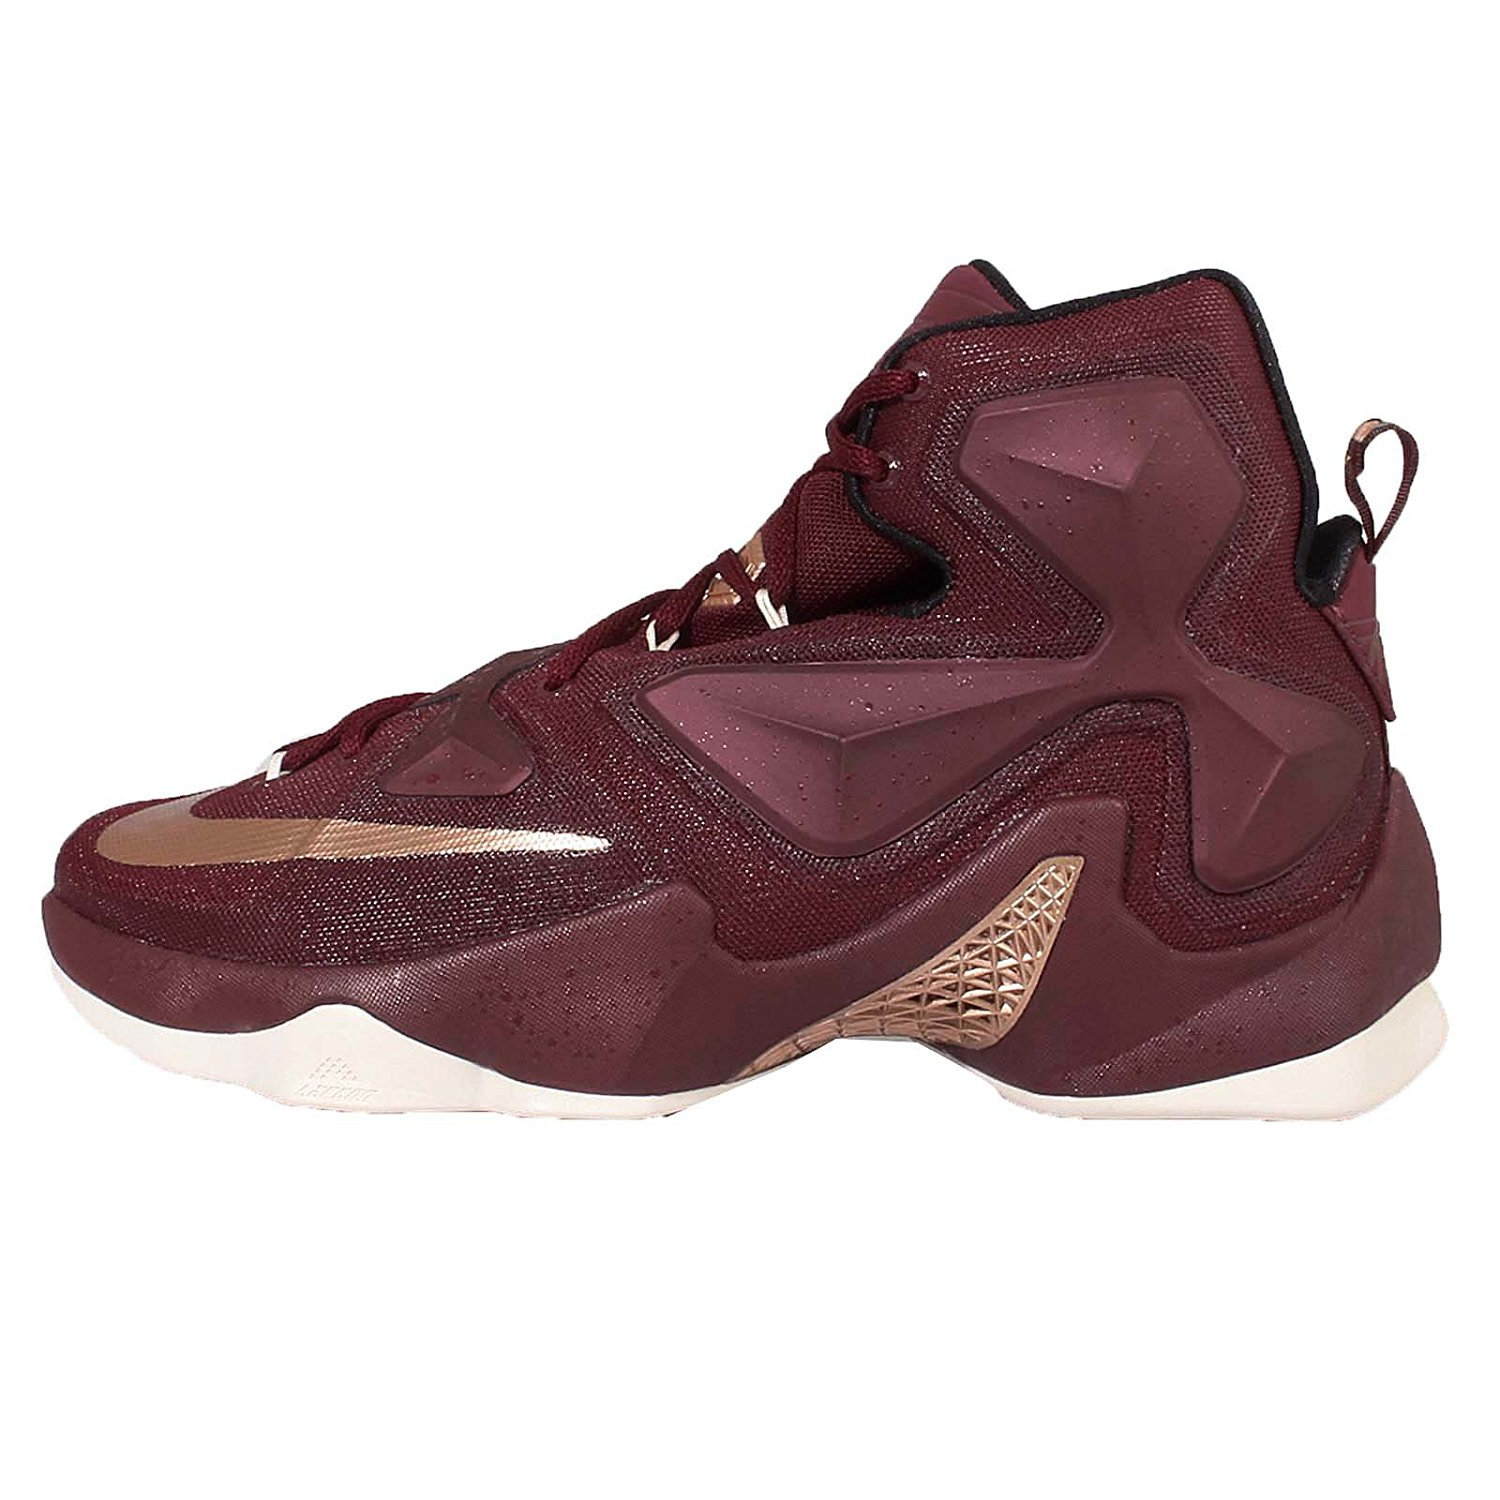 sale retailer a8db3 cee81 Get Quotations · Nike Men s Lebron XIII EP, TEAM RED MTLC RED BRONZE-BLACK -SAIL